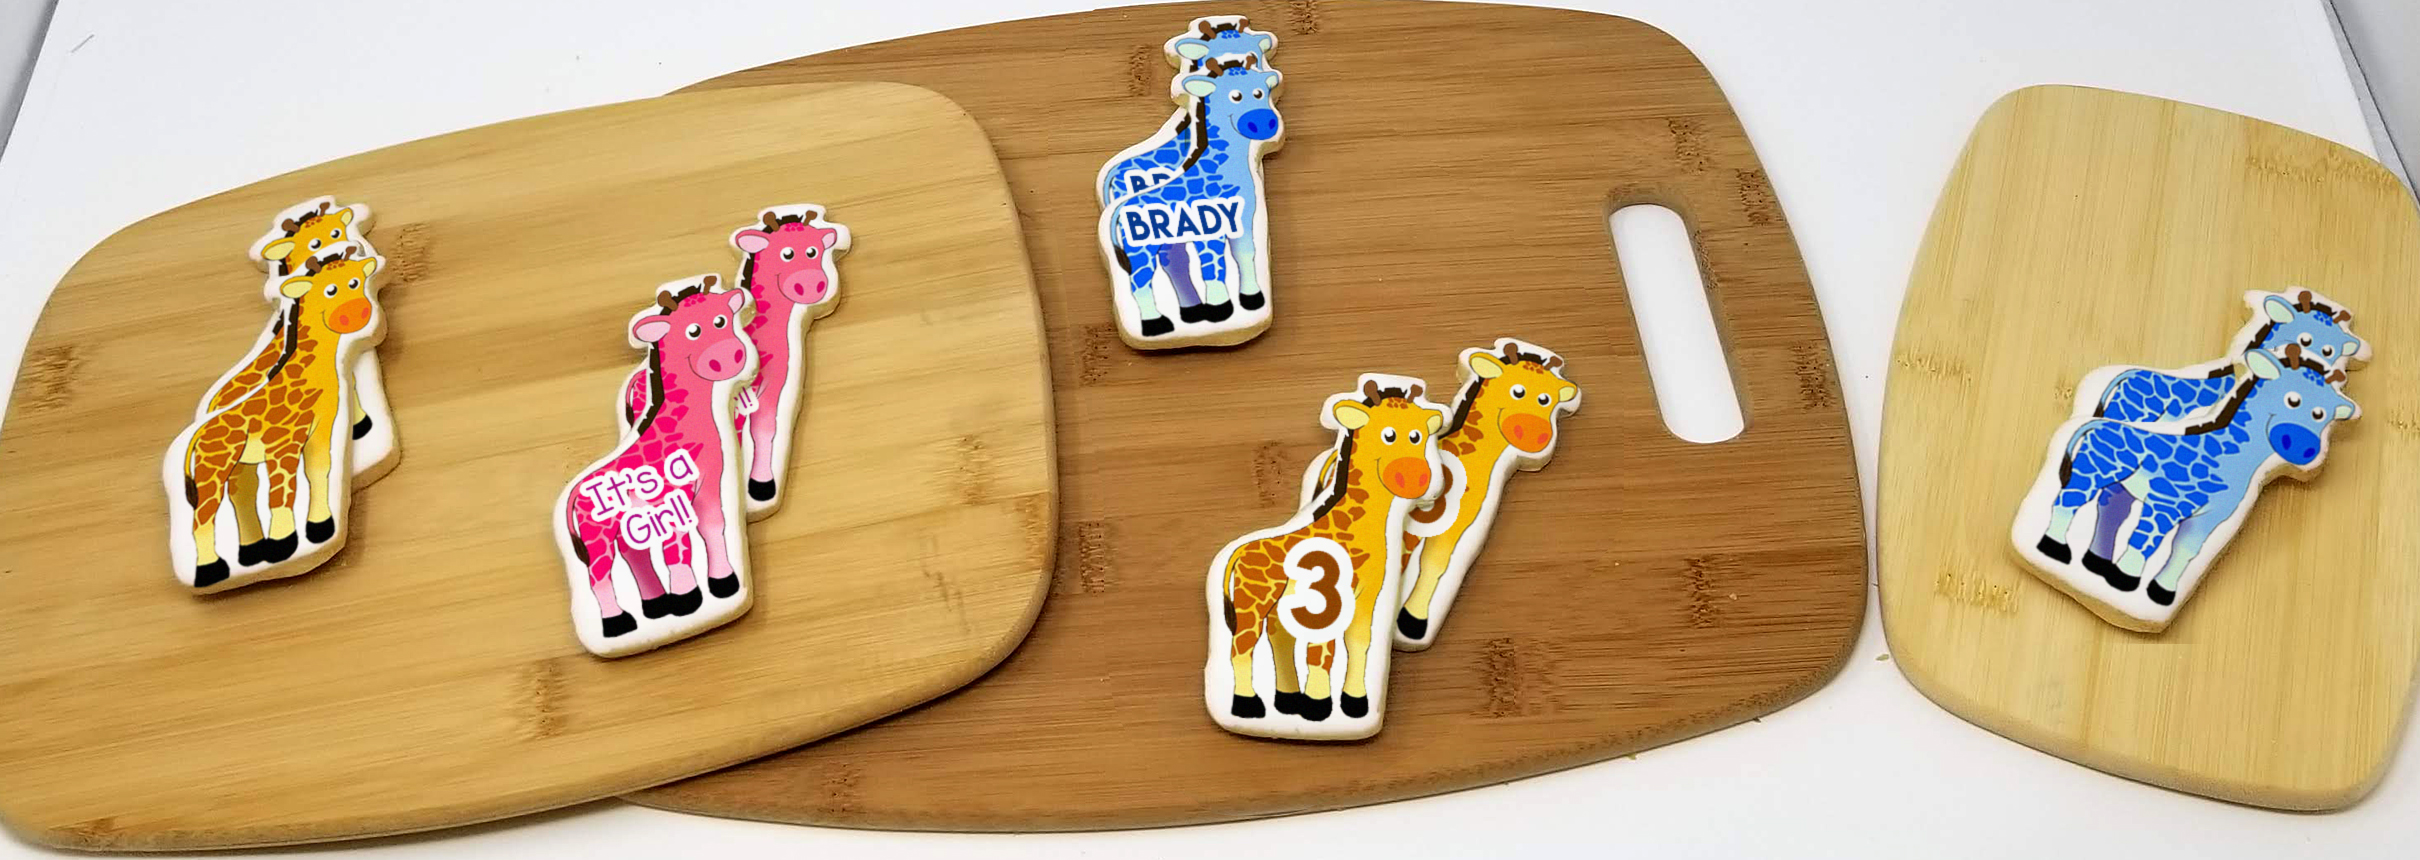 Personalized Baby Shower Favor Cookies | Wicked Good Cookies | Personalized Gifts, Gourmet Cookies, Cookie Favors, Creative Holiday Gifts, Custom Logo ...